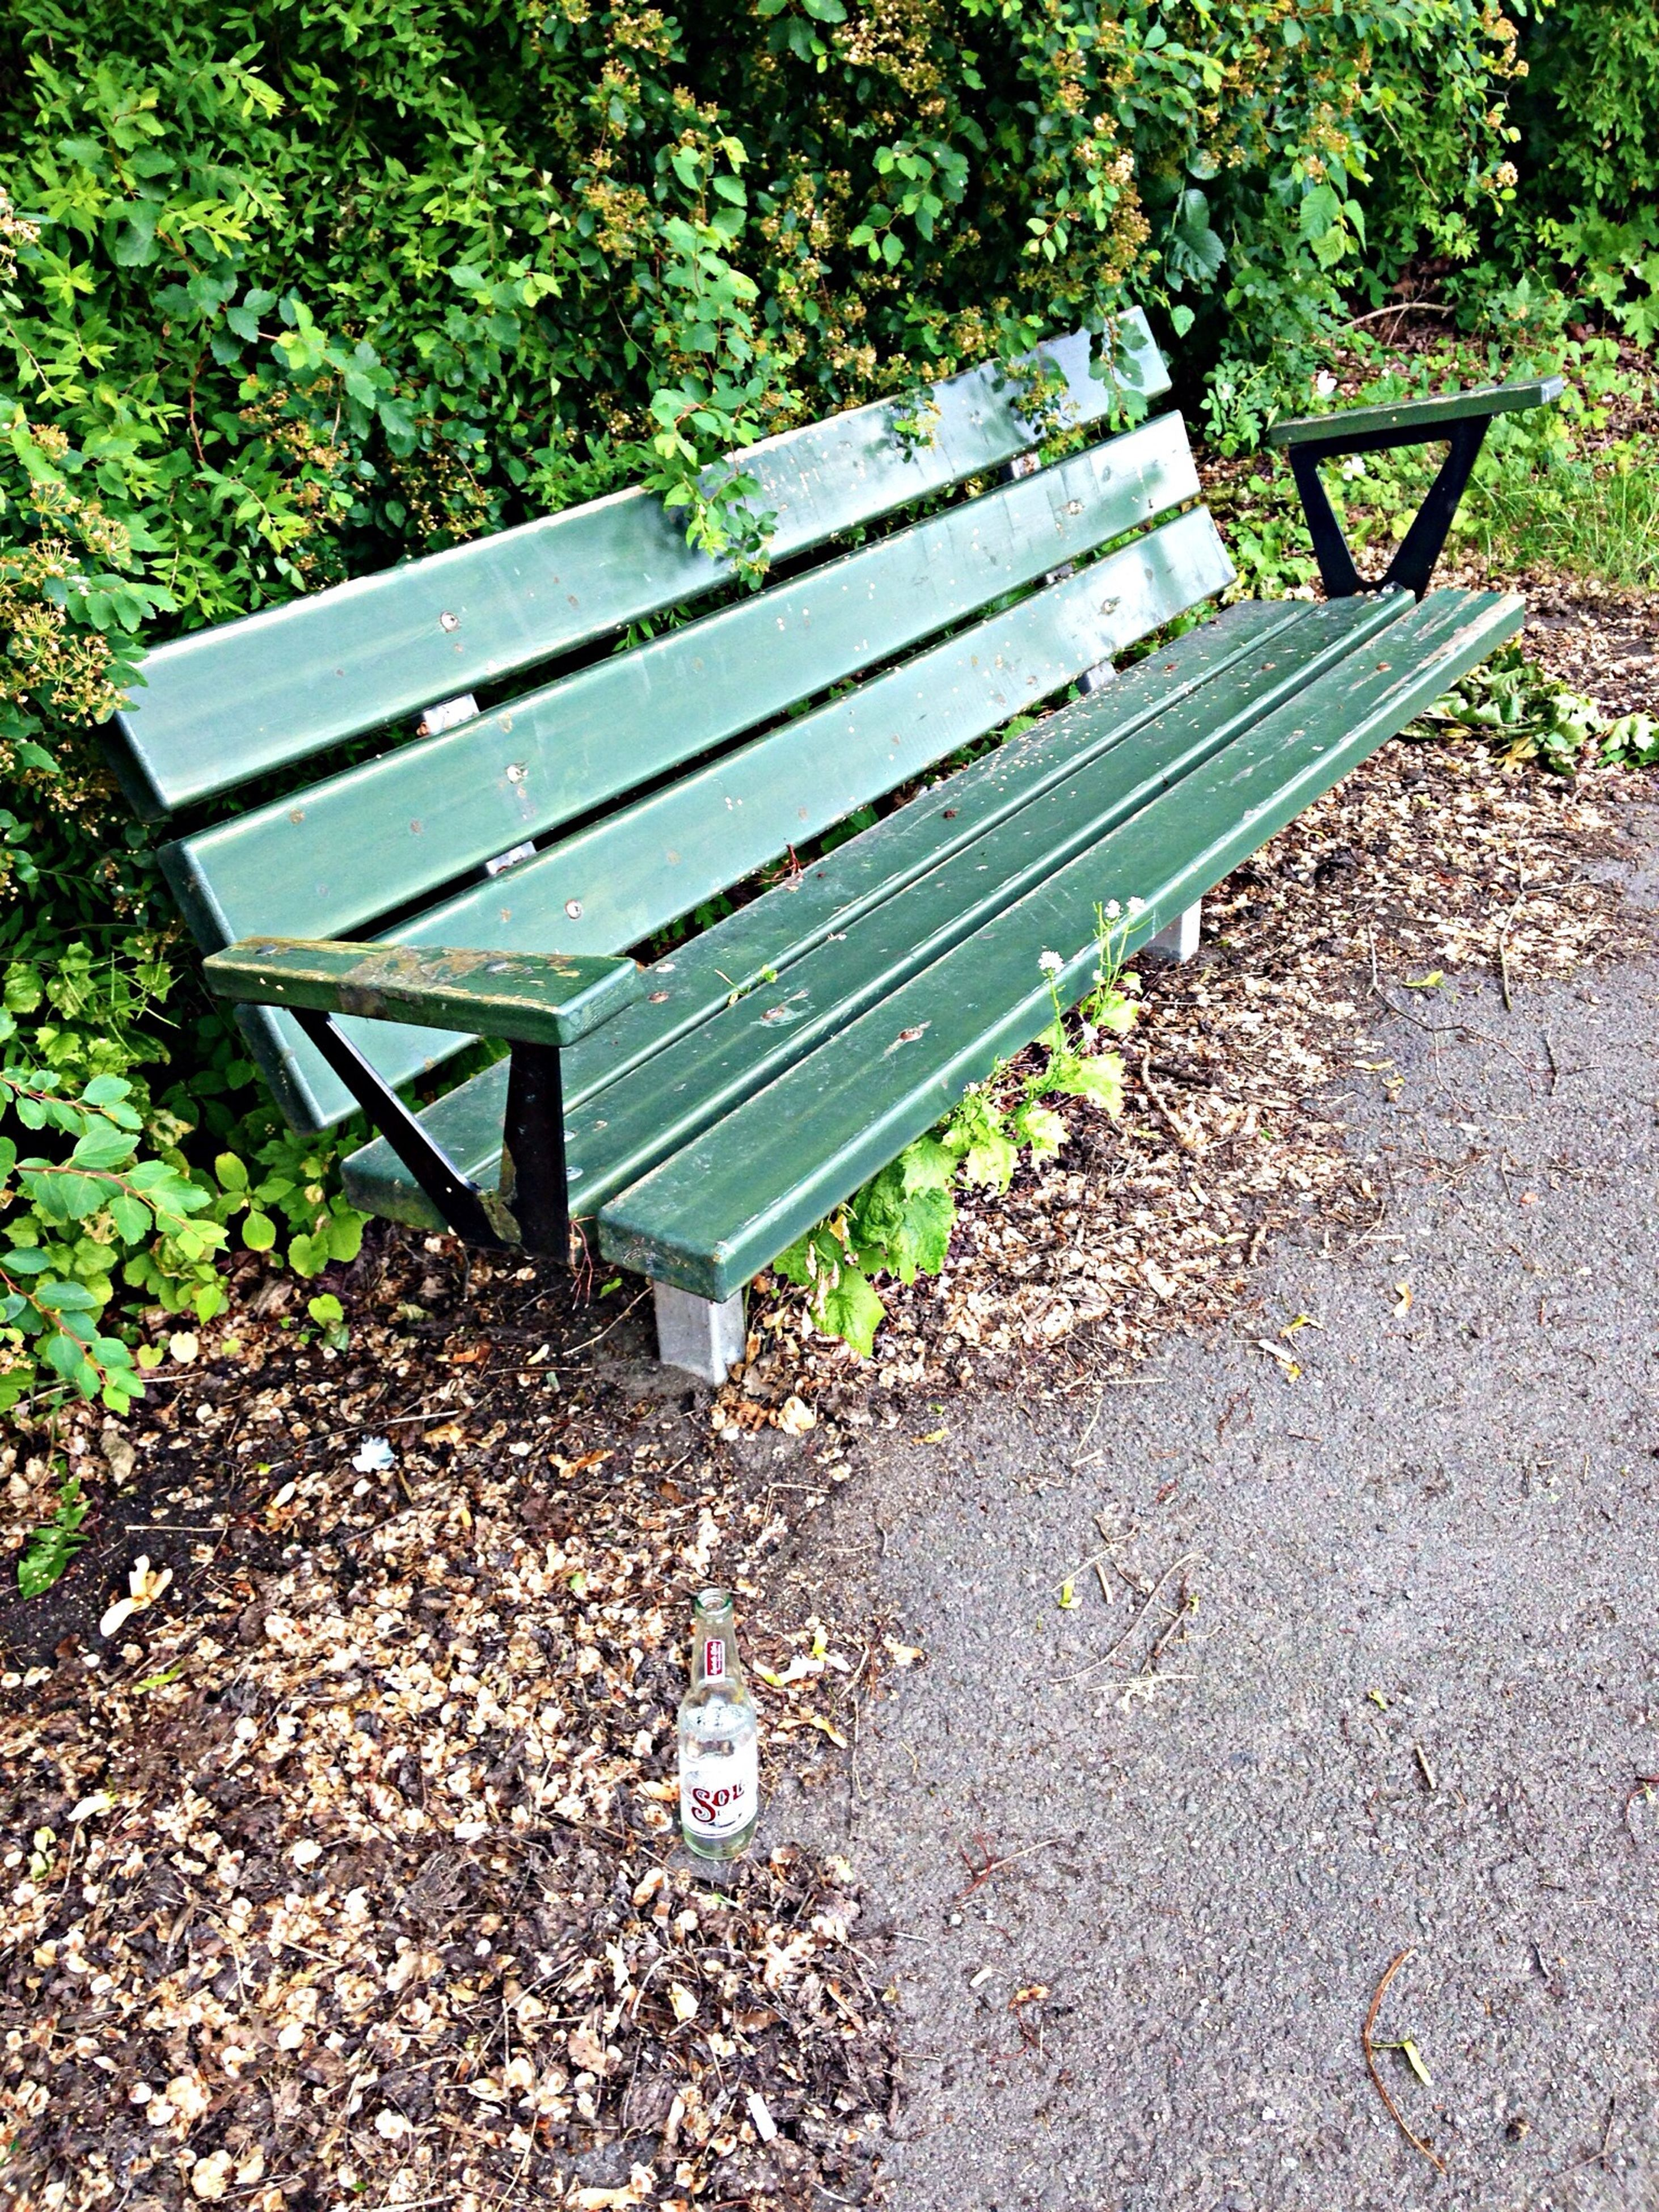 empty, absence, bench, park - man made space, tree, sunlight, the way forward, plant, day, shadow, high angle view, outdoors, nature, leaf, growth, railing, tranquility, no people, seat, park